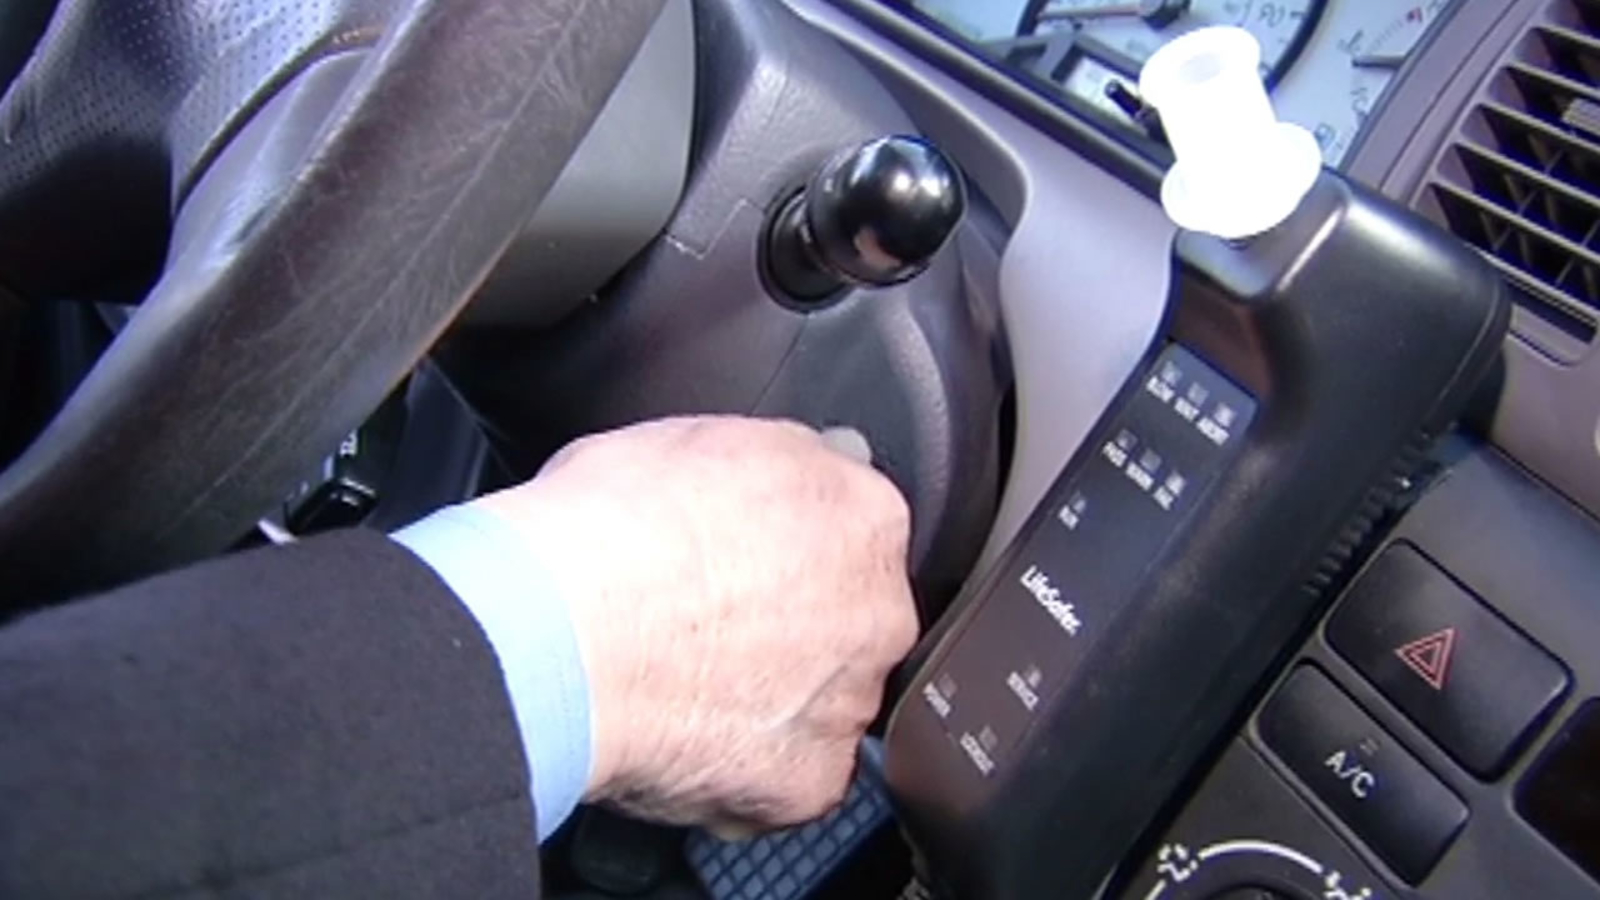 Bay Area Senator Proposes Ignition Interlock Devices For